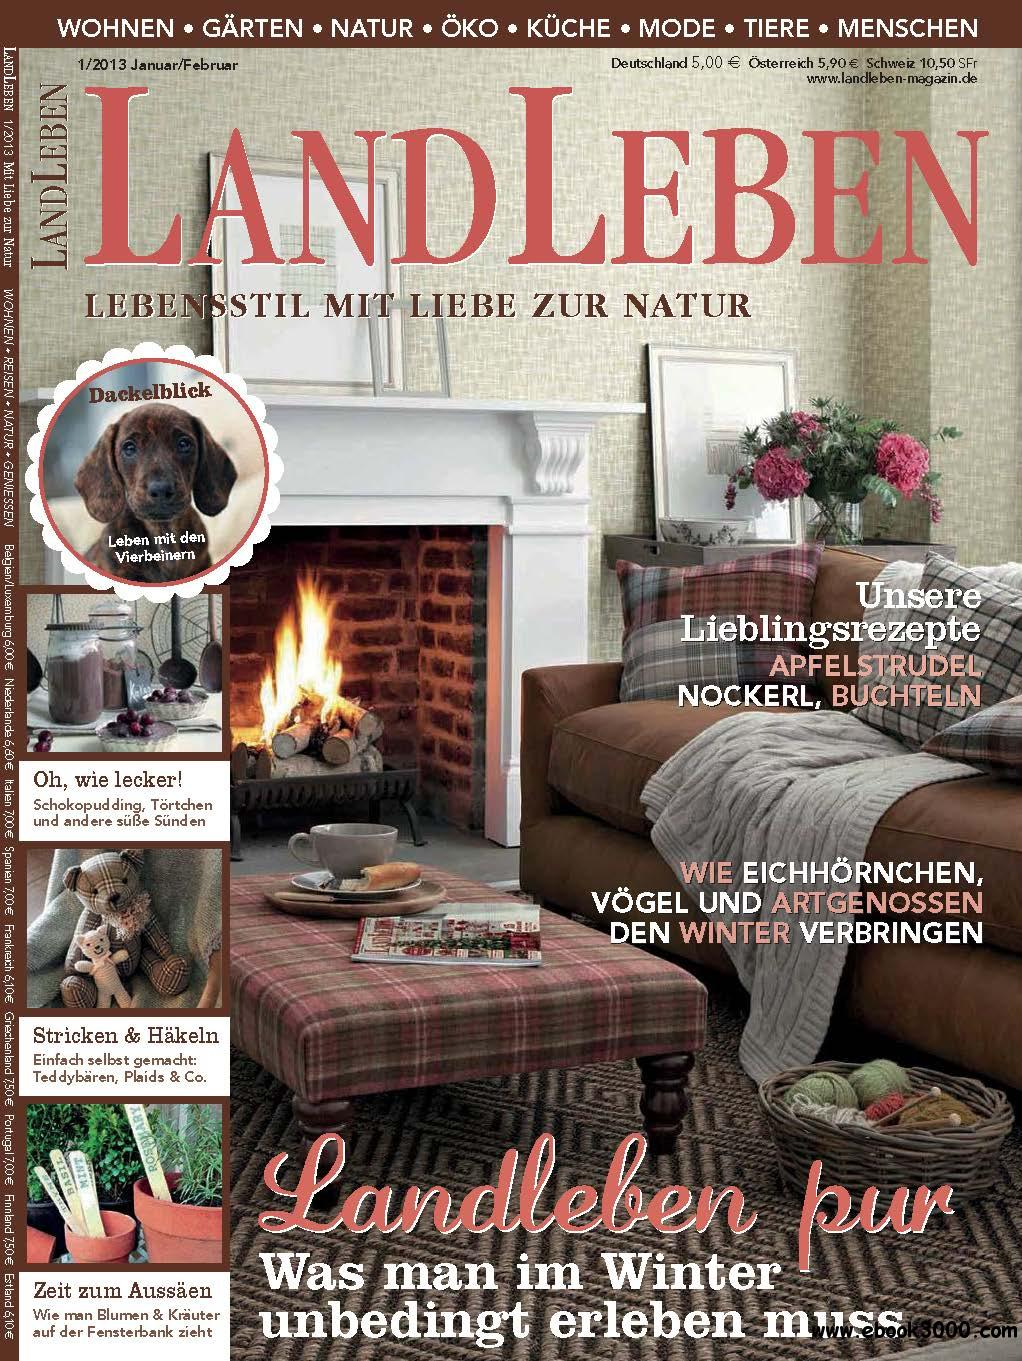 Landleben Januar/Februar 01/2013 free download